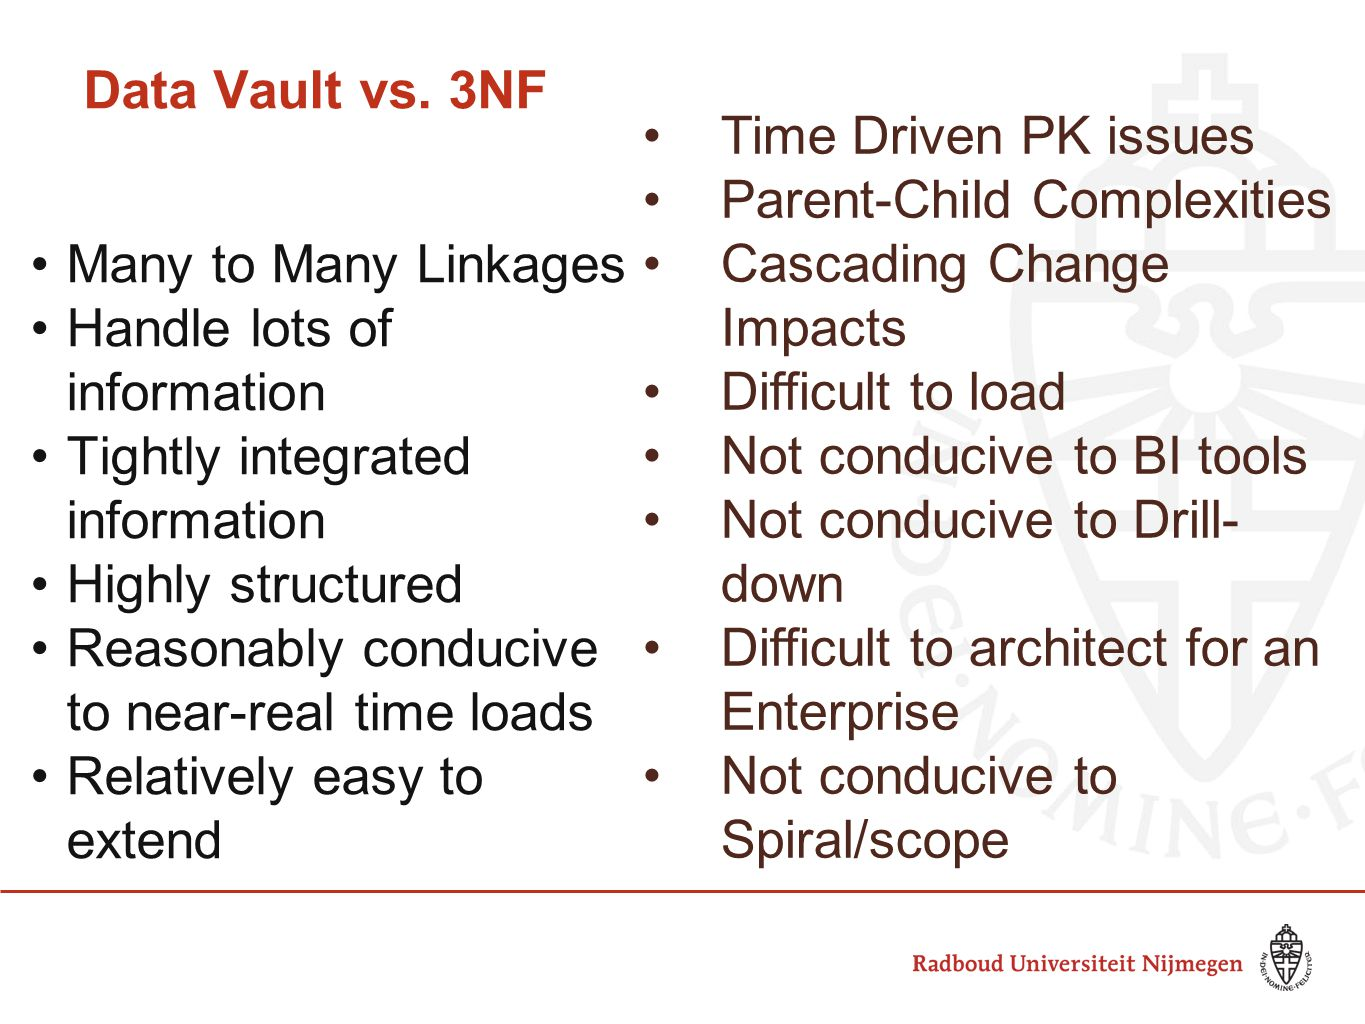 Data Vault vs. 3NF Many to Many Linkages Handle lots of information Tightly integrated information Highly structured Reasonably conducive to near-real